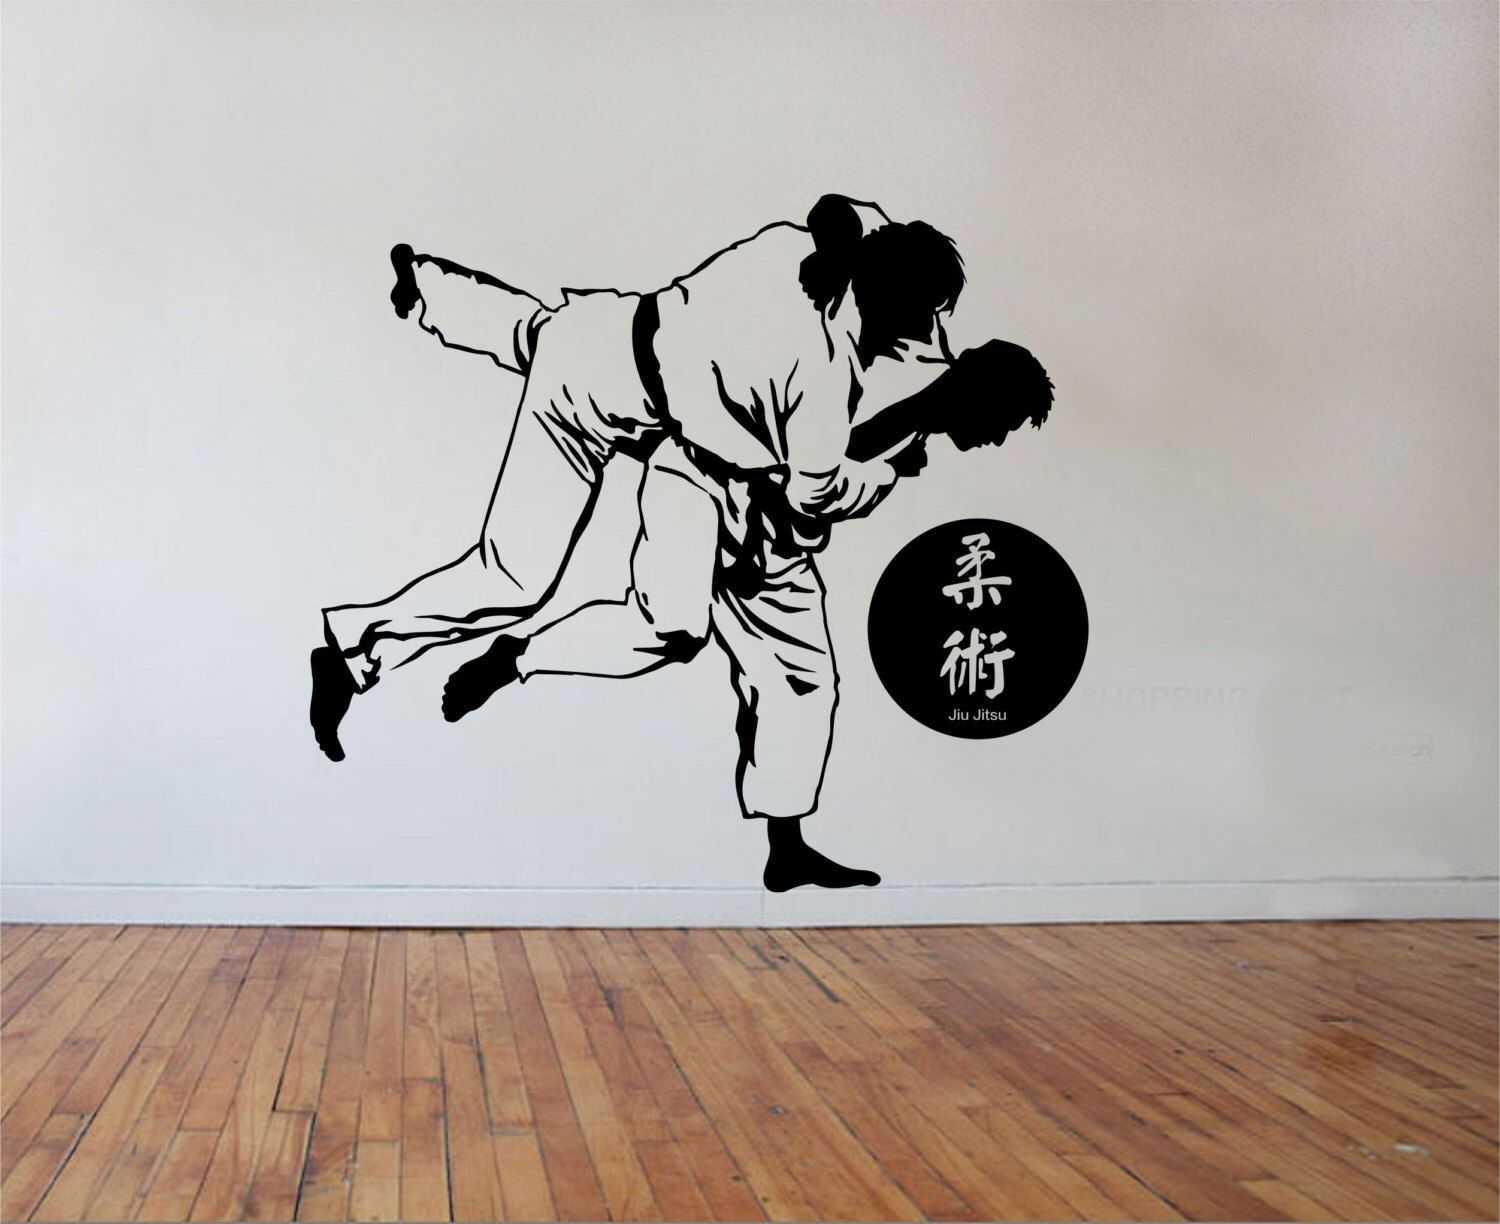 Ju Jitsu Wall Decal Karate Vinyl Sticker Art Decor Bedroom Design Mural Martial Arts Home